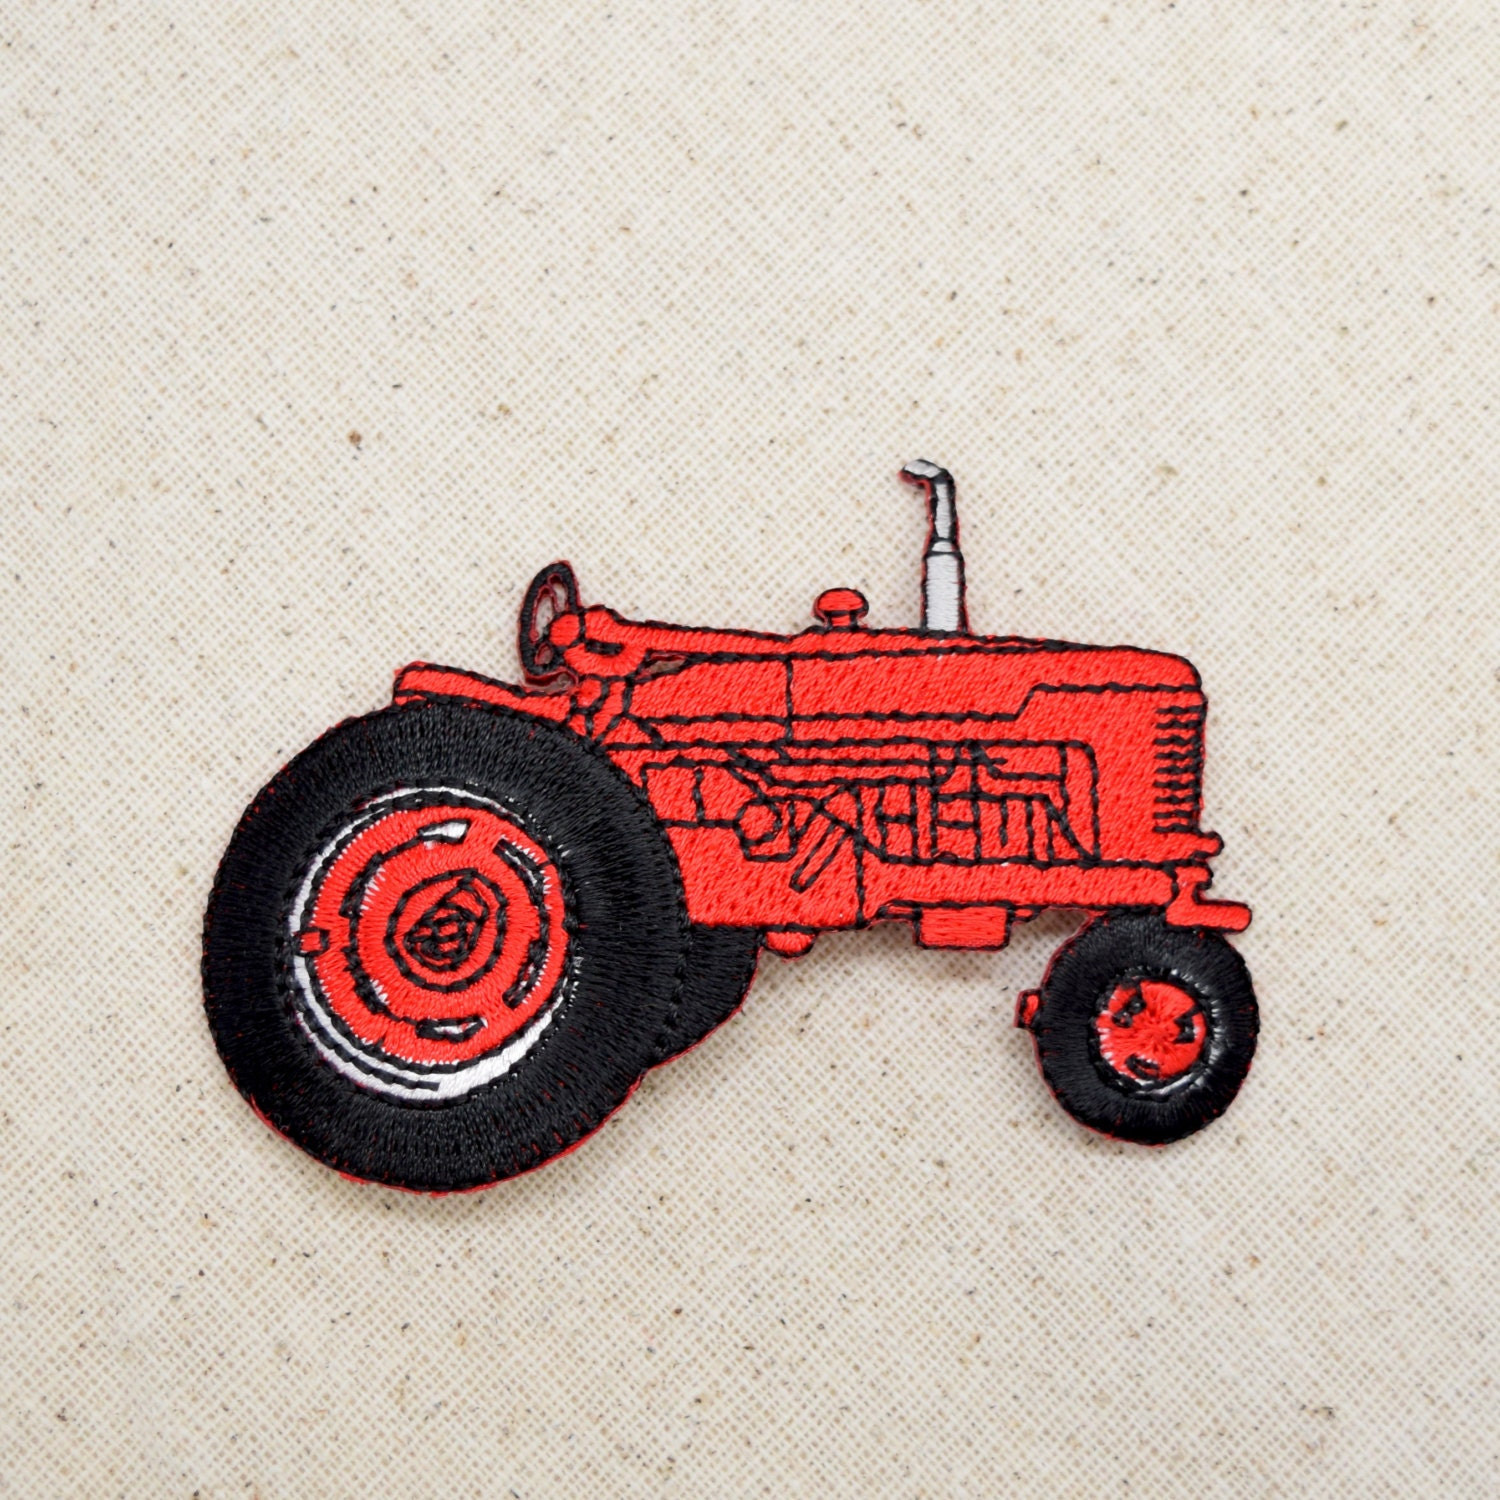 Embroidery Of Tractors : Red farm tractor embroidered patch iron on applique